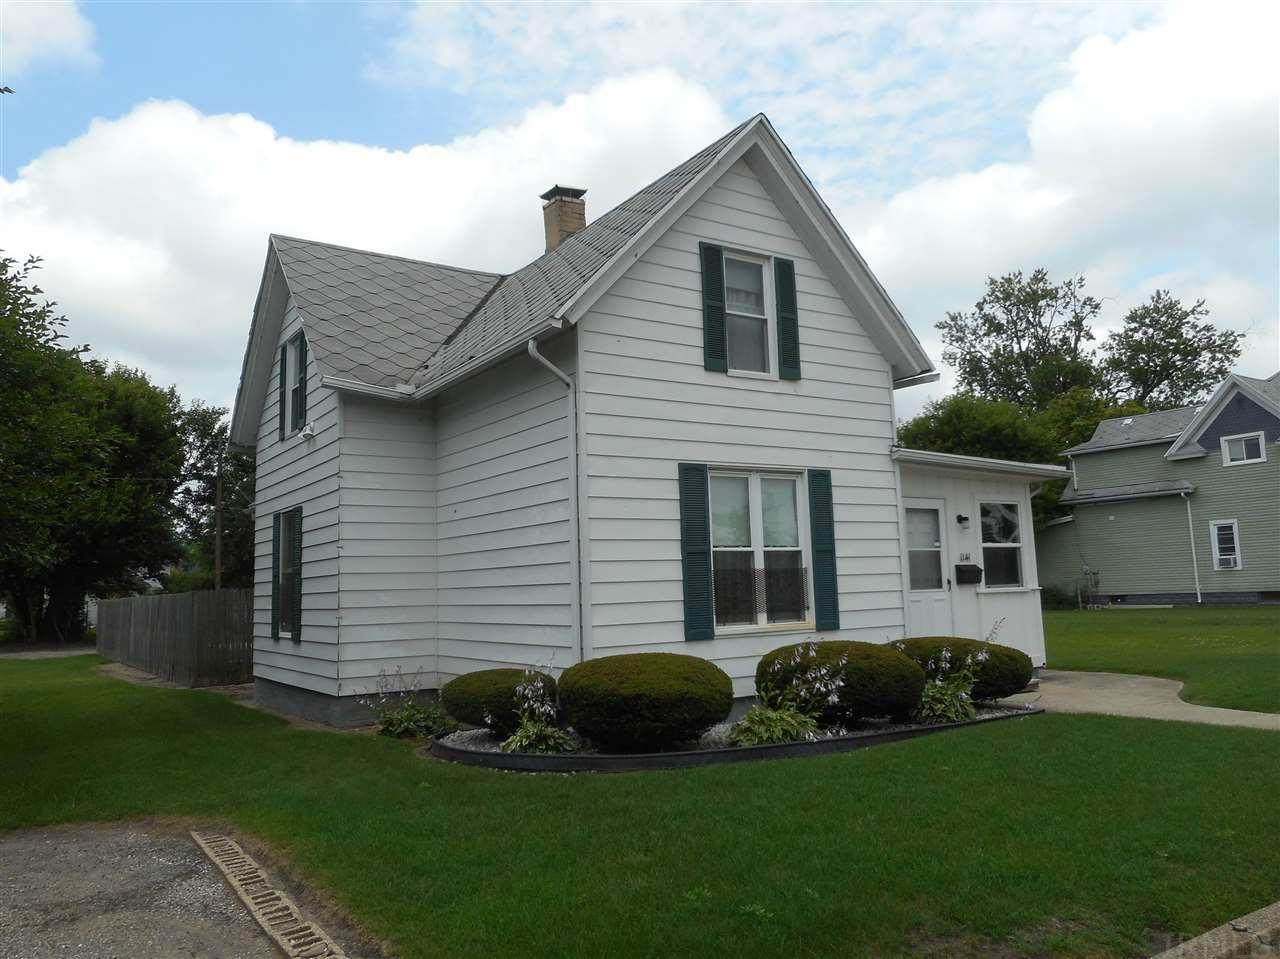 1141 Napier, South Bend, IN 46601